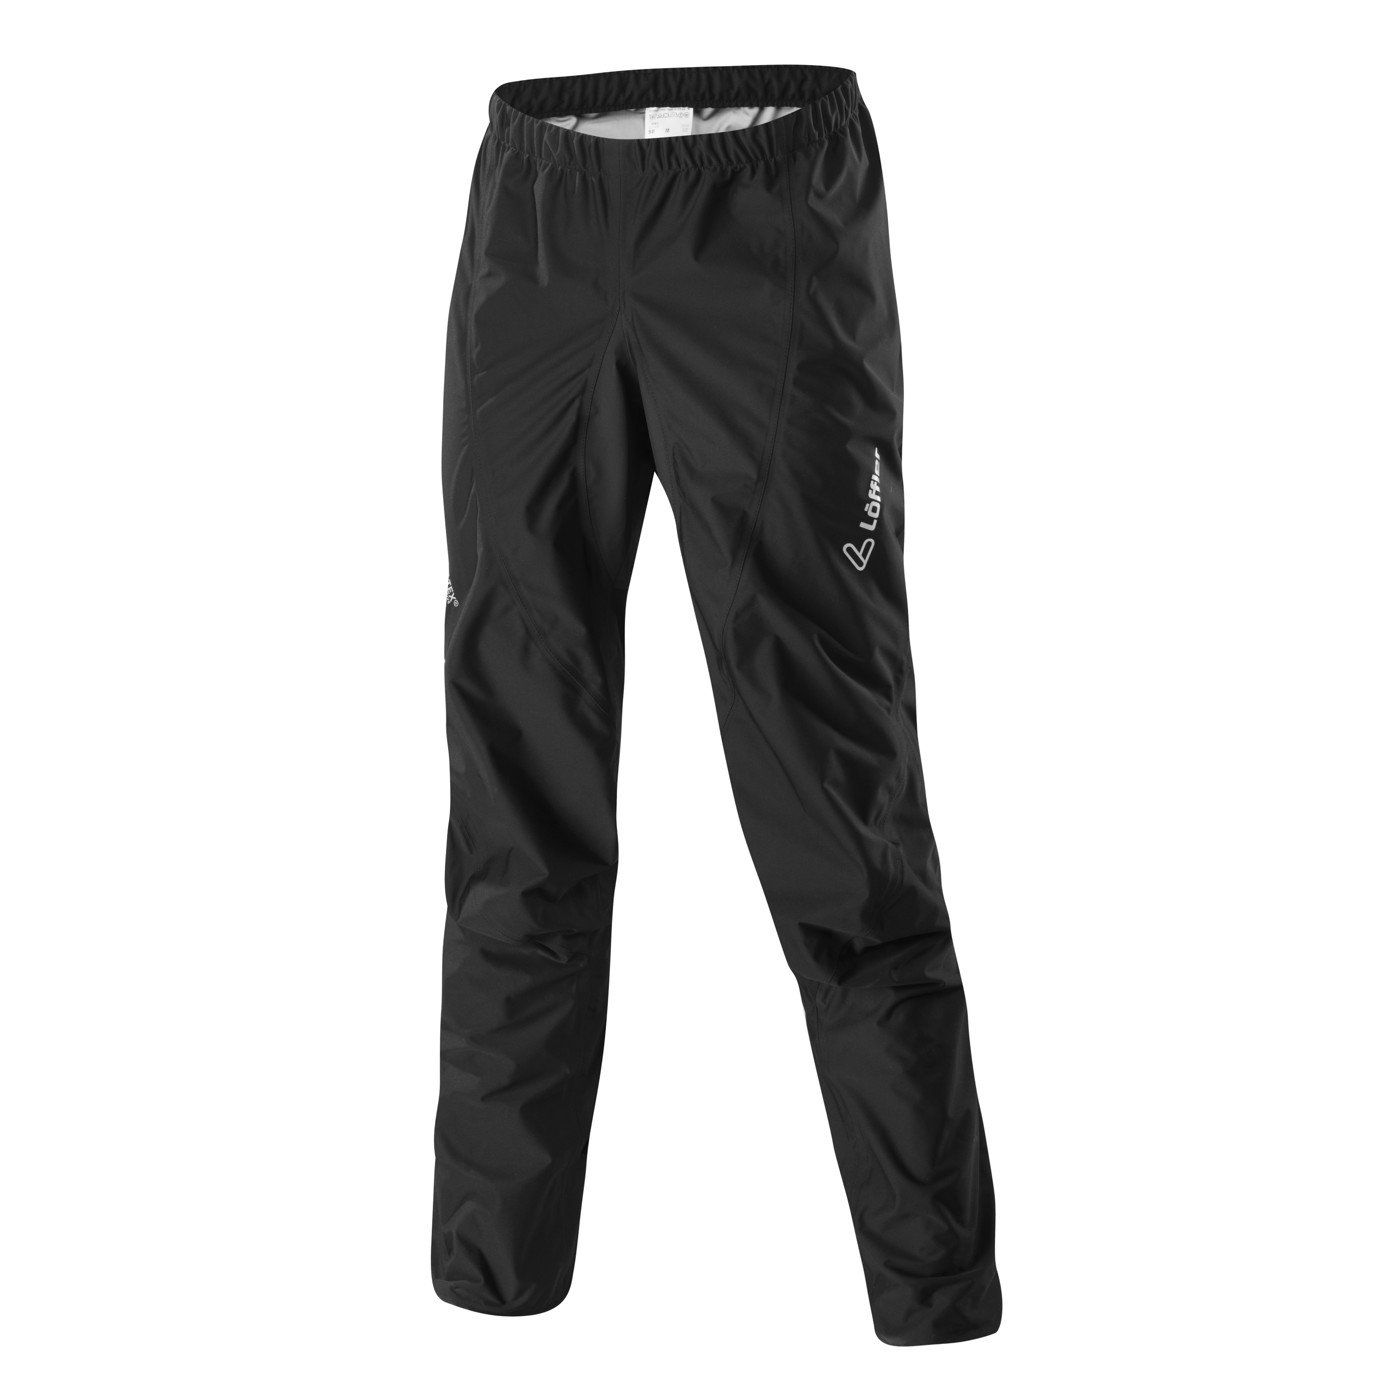 LÖFFLER M BIKE OVERPANTS GTX ACTIVE - Herren